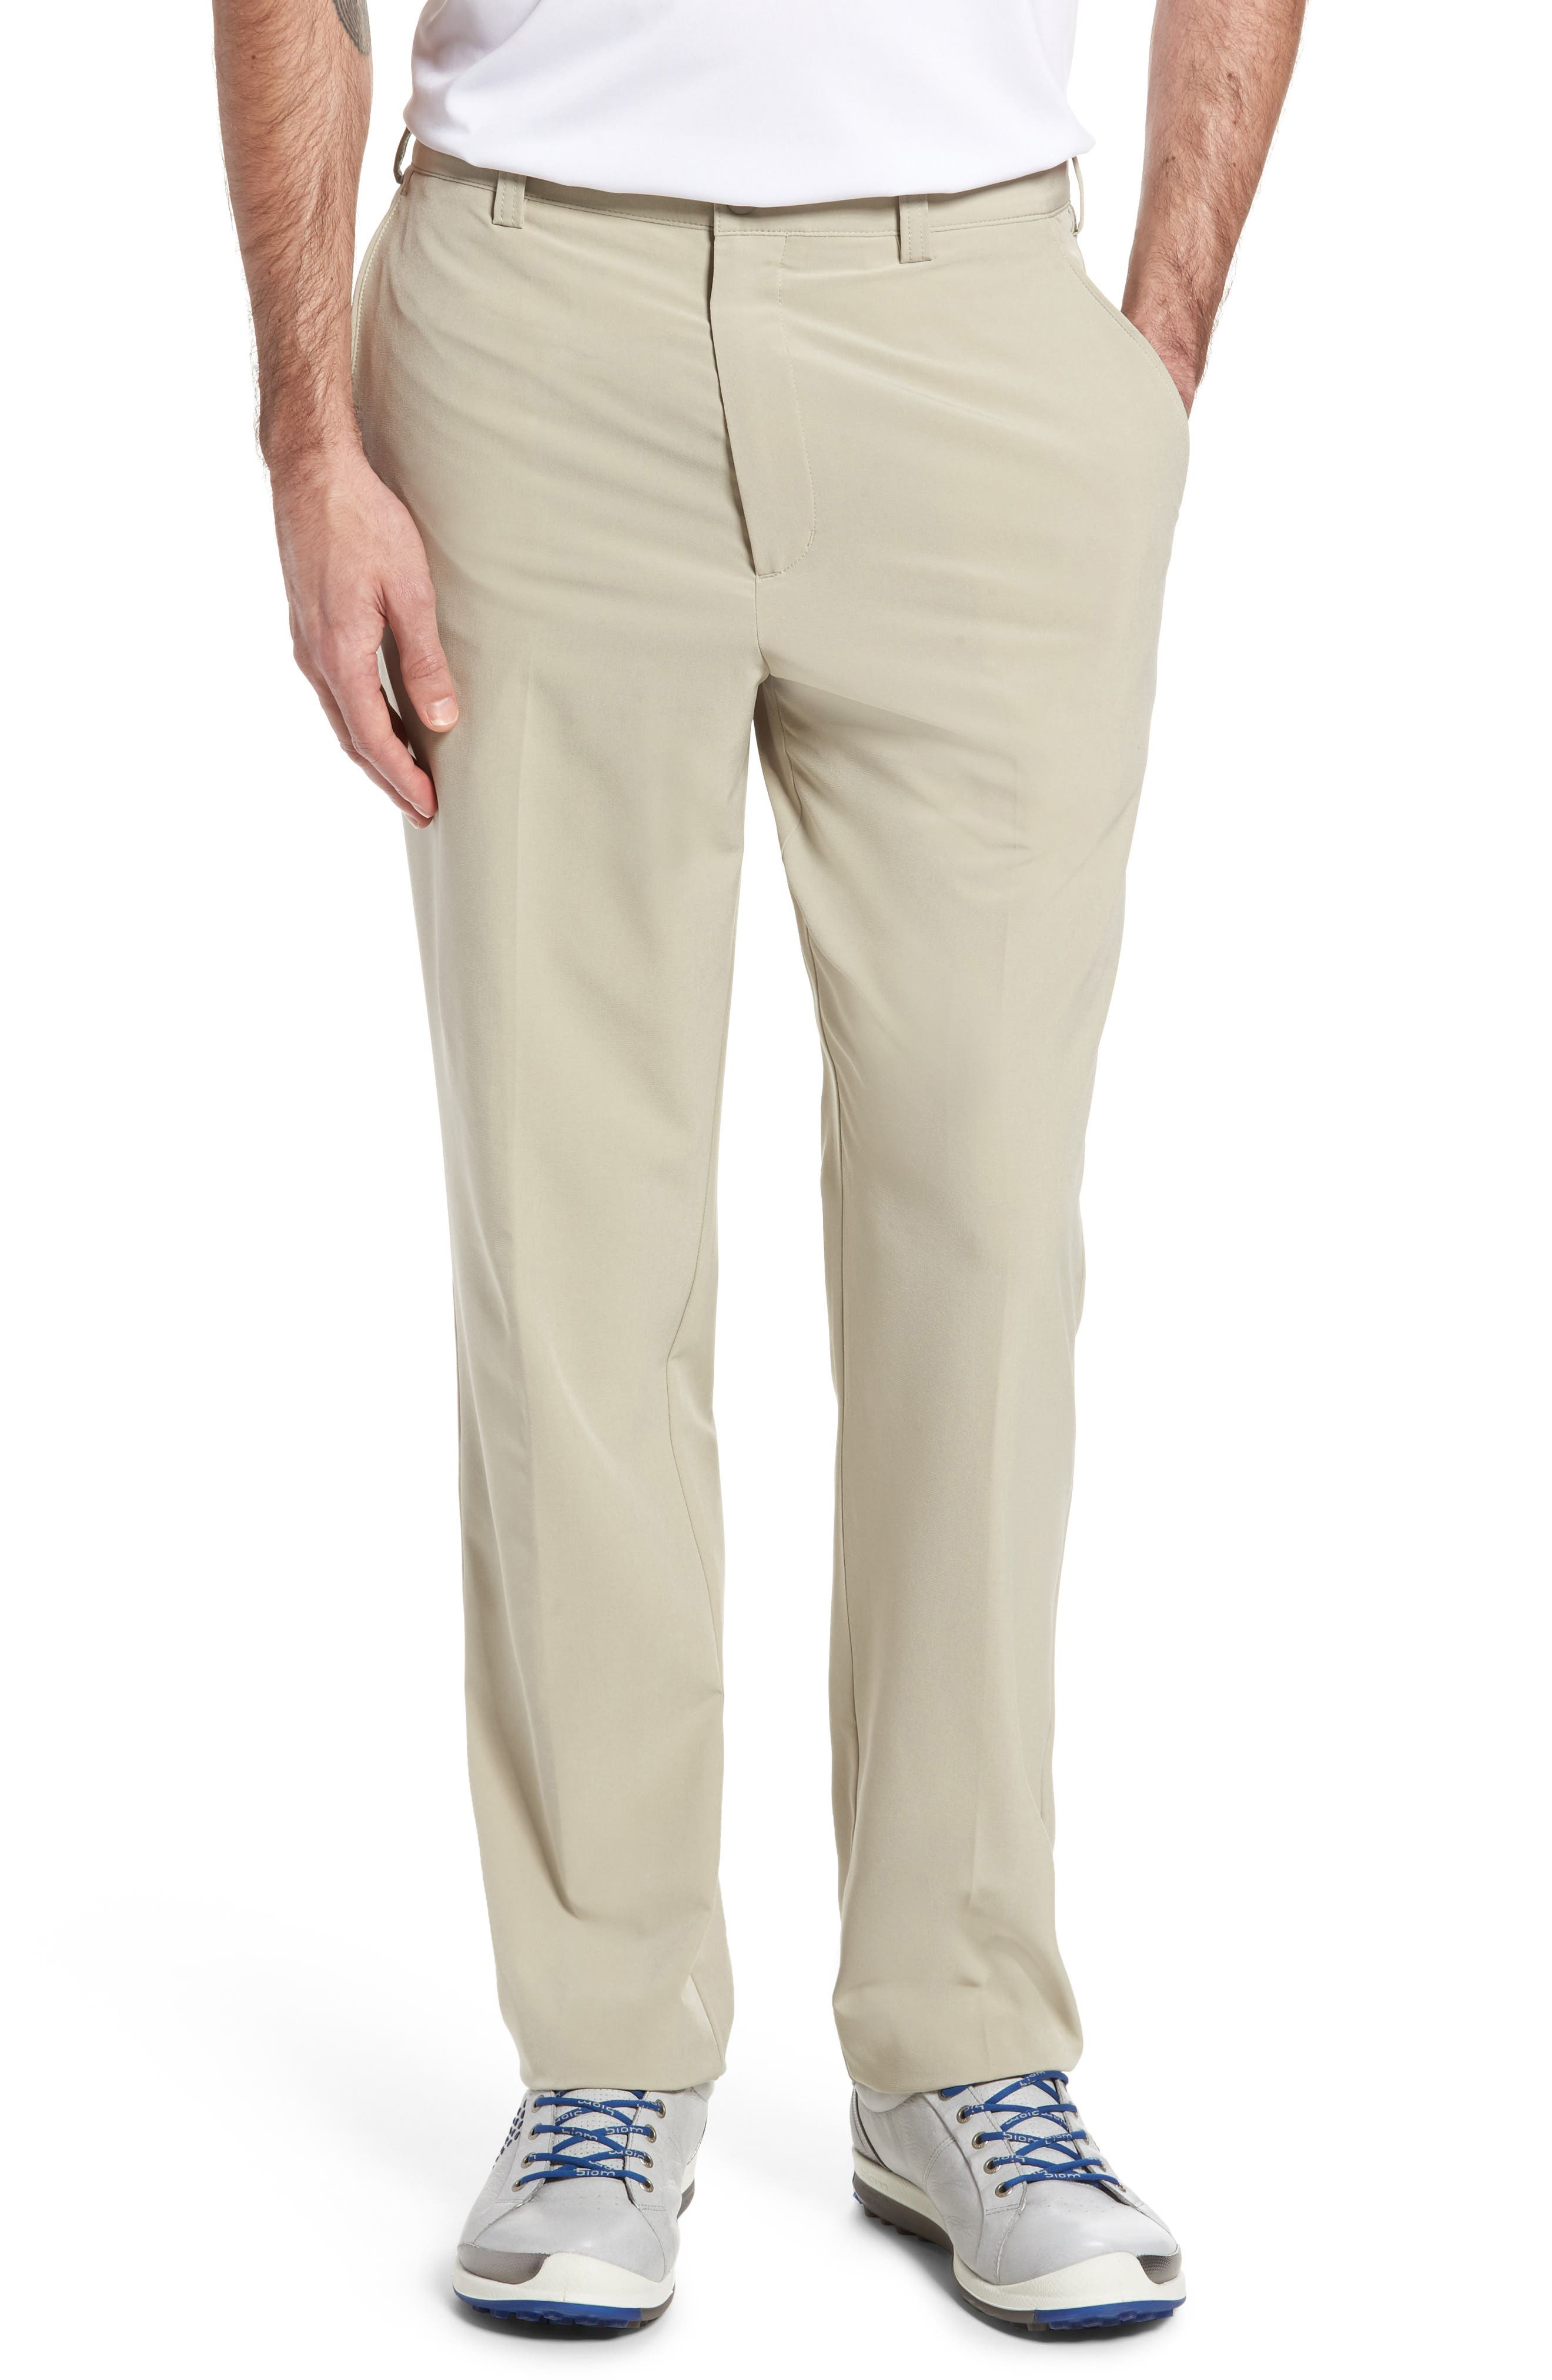 Cutter & Buck DryTec Chinos (Big & Tall)